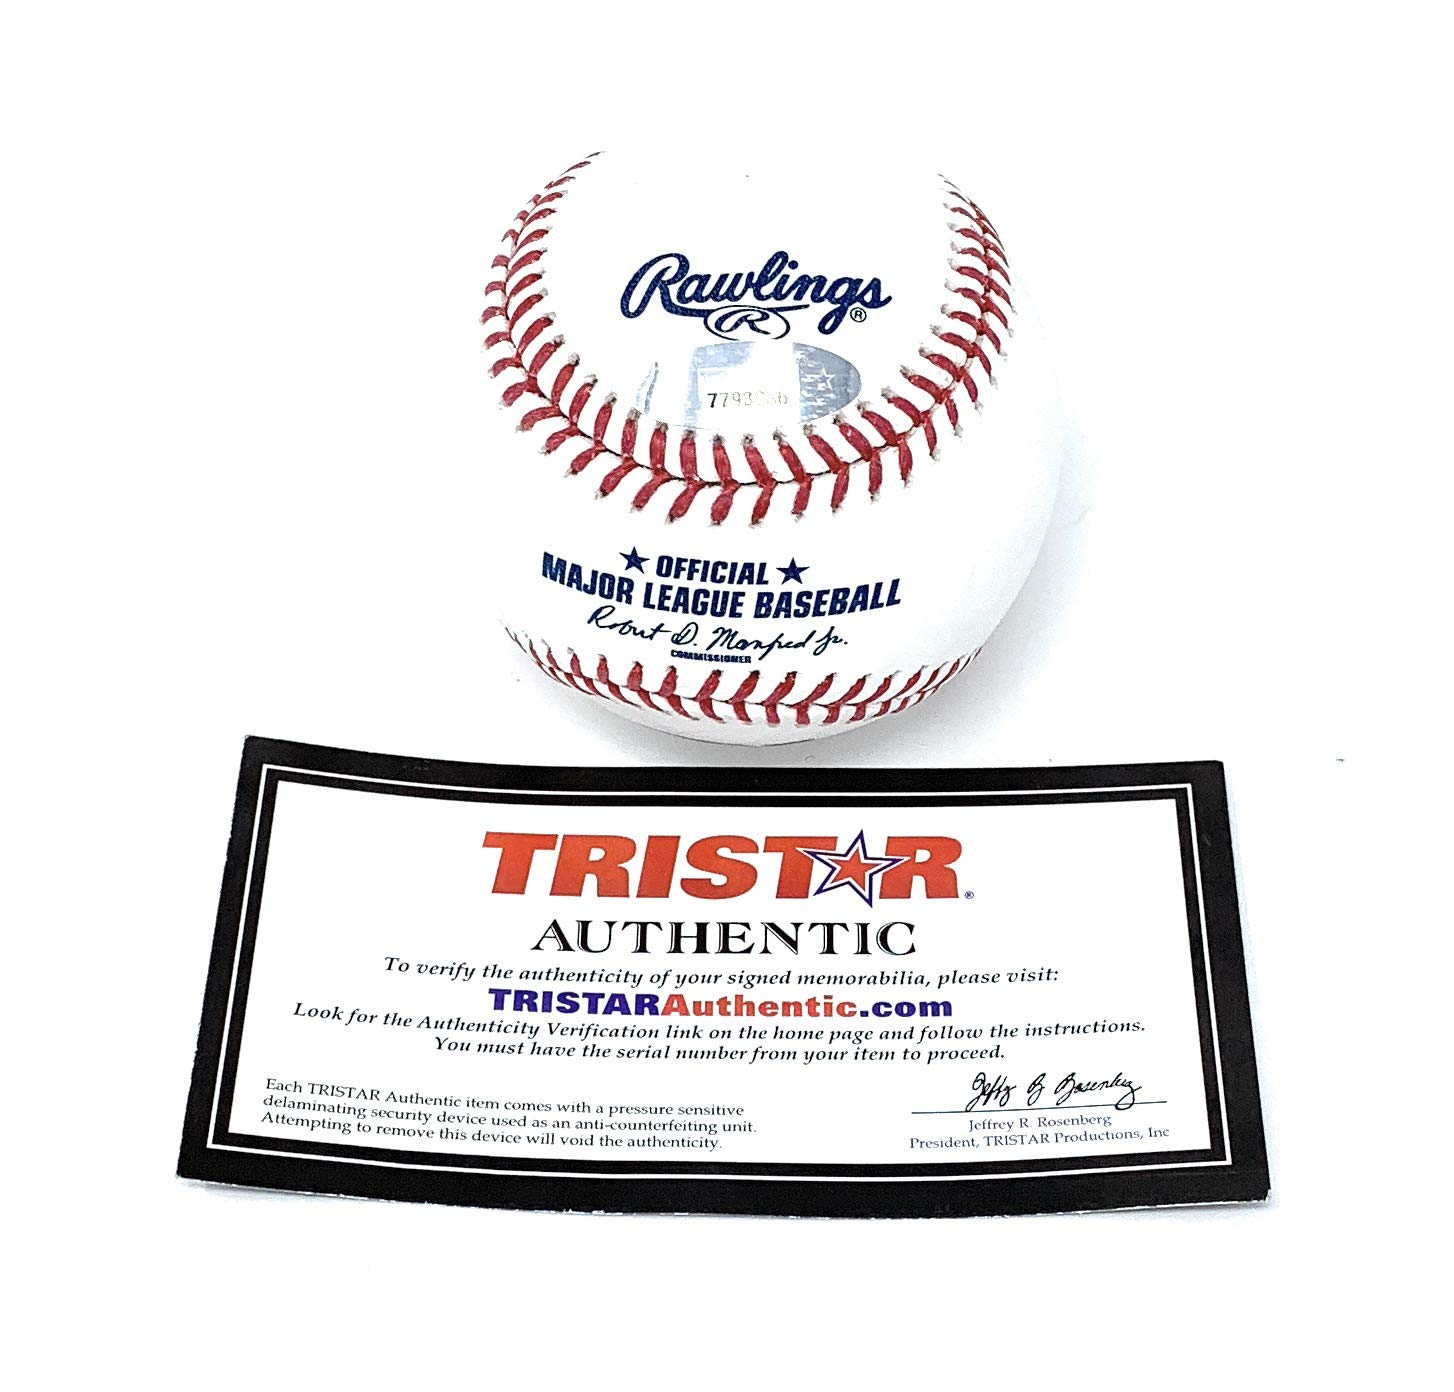 Josh Reddick Houston Astros Signed Autograph Official MLB Baseball Tristar Authentic Certified